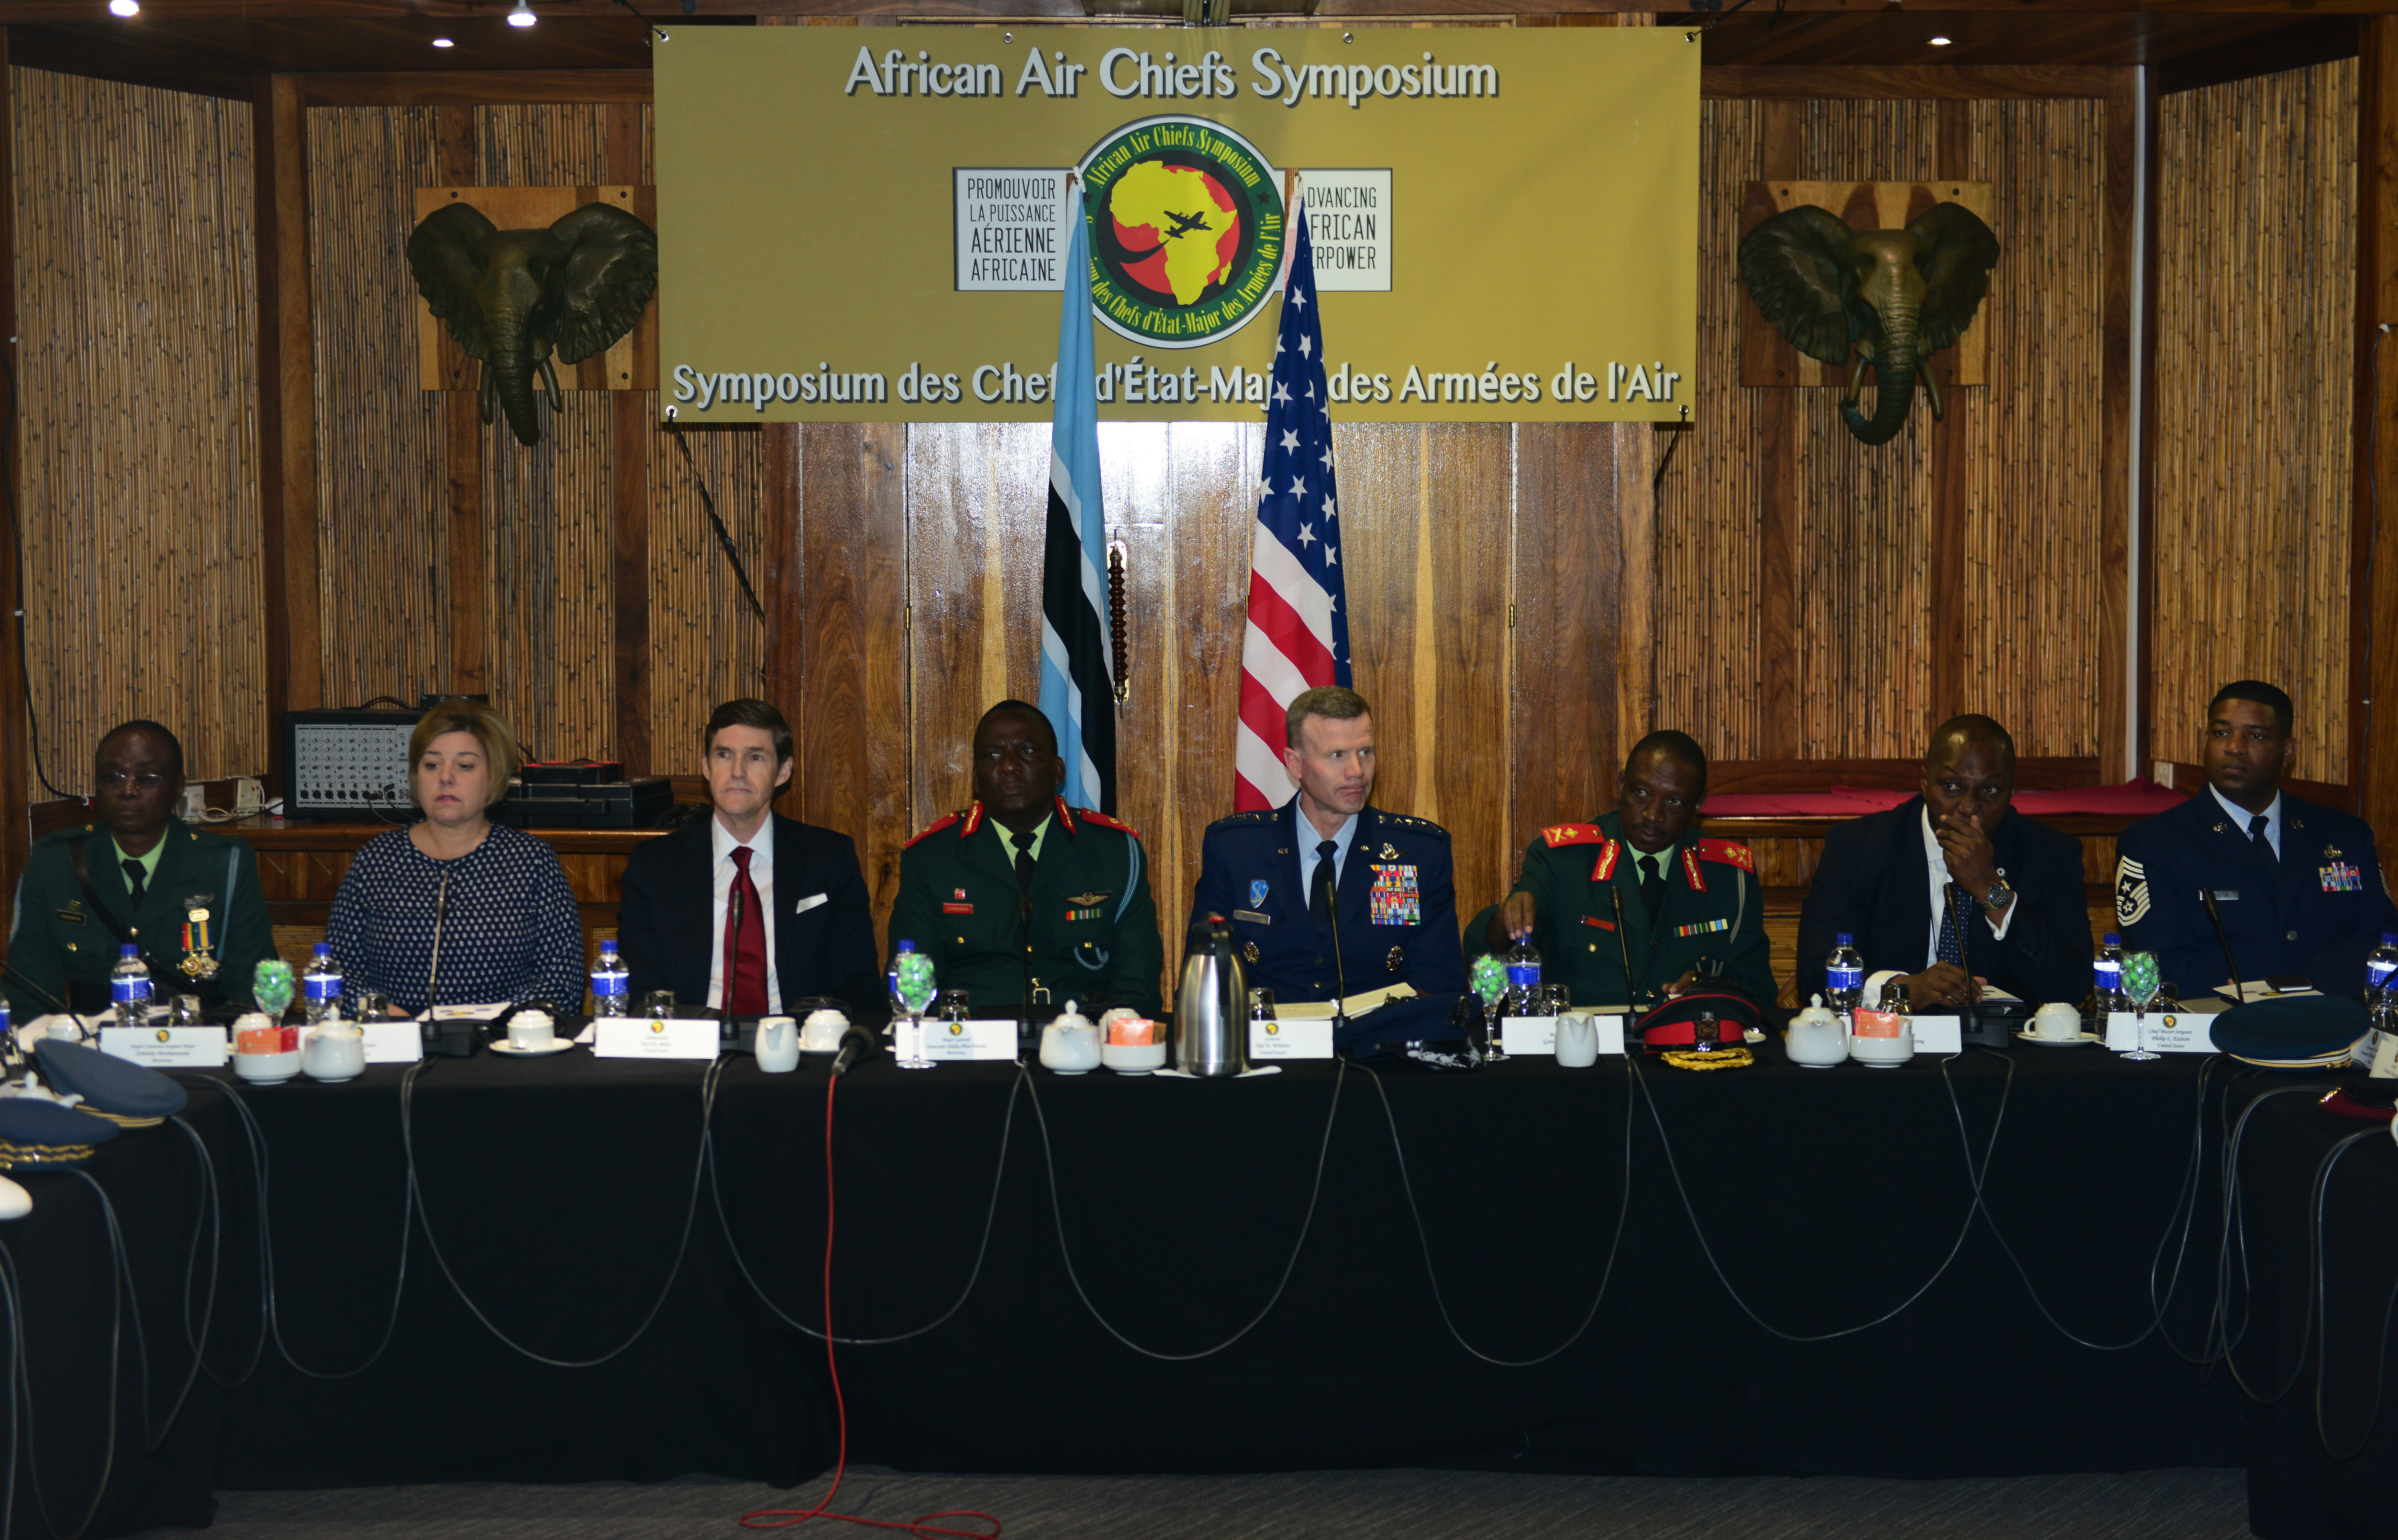 Attendees of the 2017 African Air Chiefs Symposium listen to air chiefs introductions during the opening ceremony in Kasane, Botswana on May 16, 2017. The purpose of the symposium is to create a forum for air chiefs from across the African continent to come together to address regional and continental issues, enhance relationships and increase cooperation. This year's conference will focus on the training aspect of force development. (U.S. Air Force photo by Staff Sgt. Krystal Ardrey/Released)